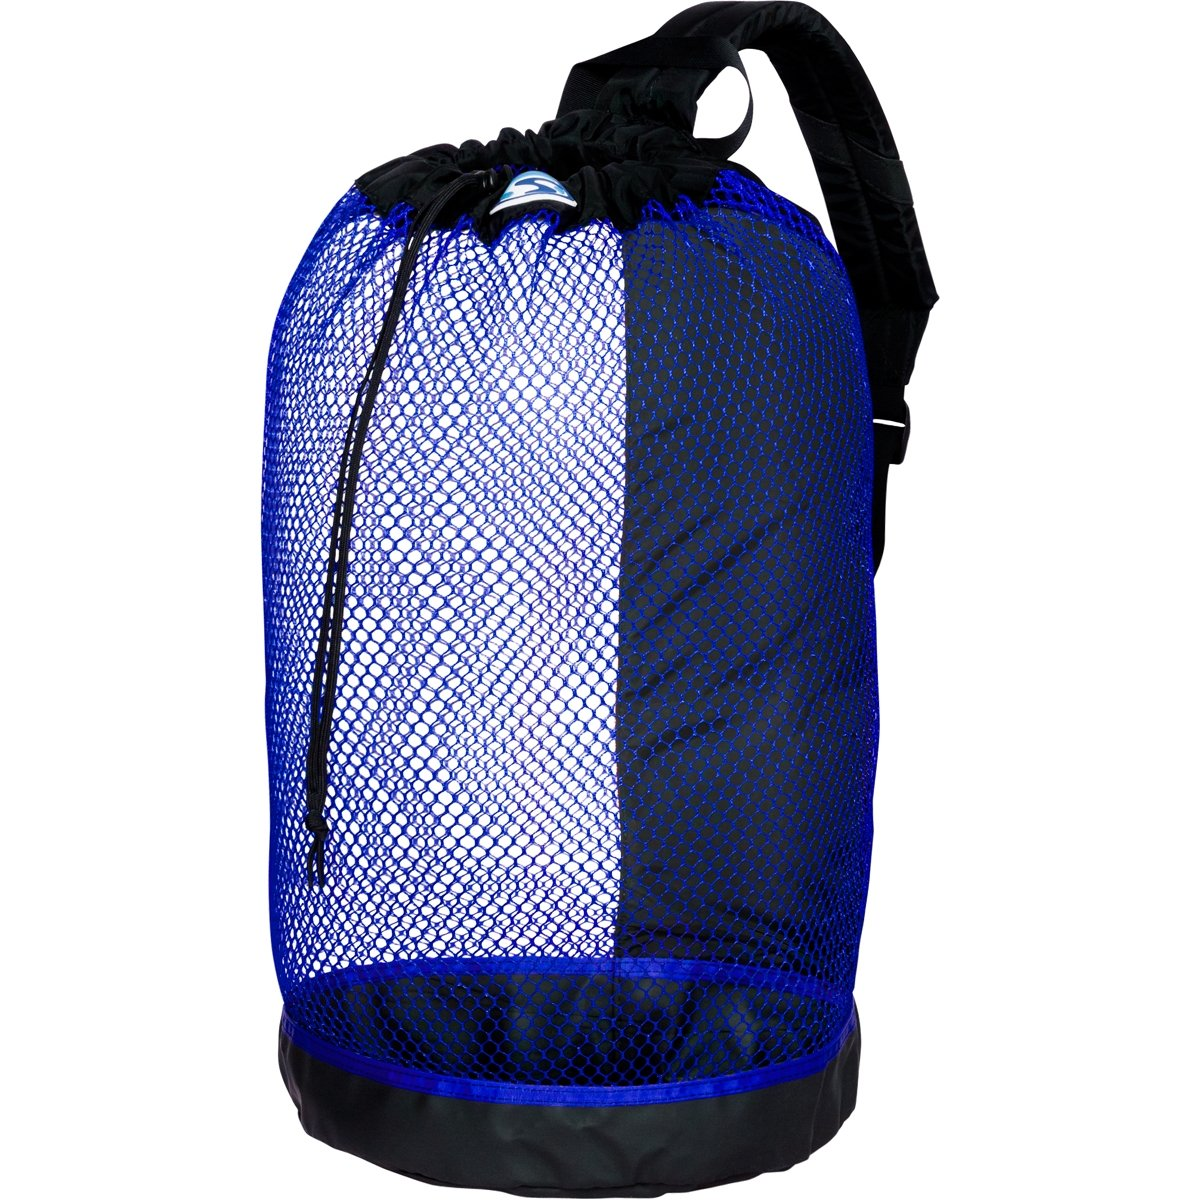 Stahlsac B.V.I. Mesh Backpack (Black/Blue)